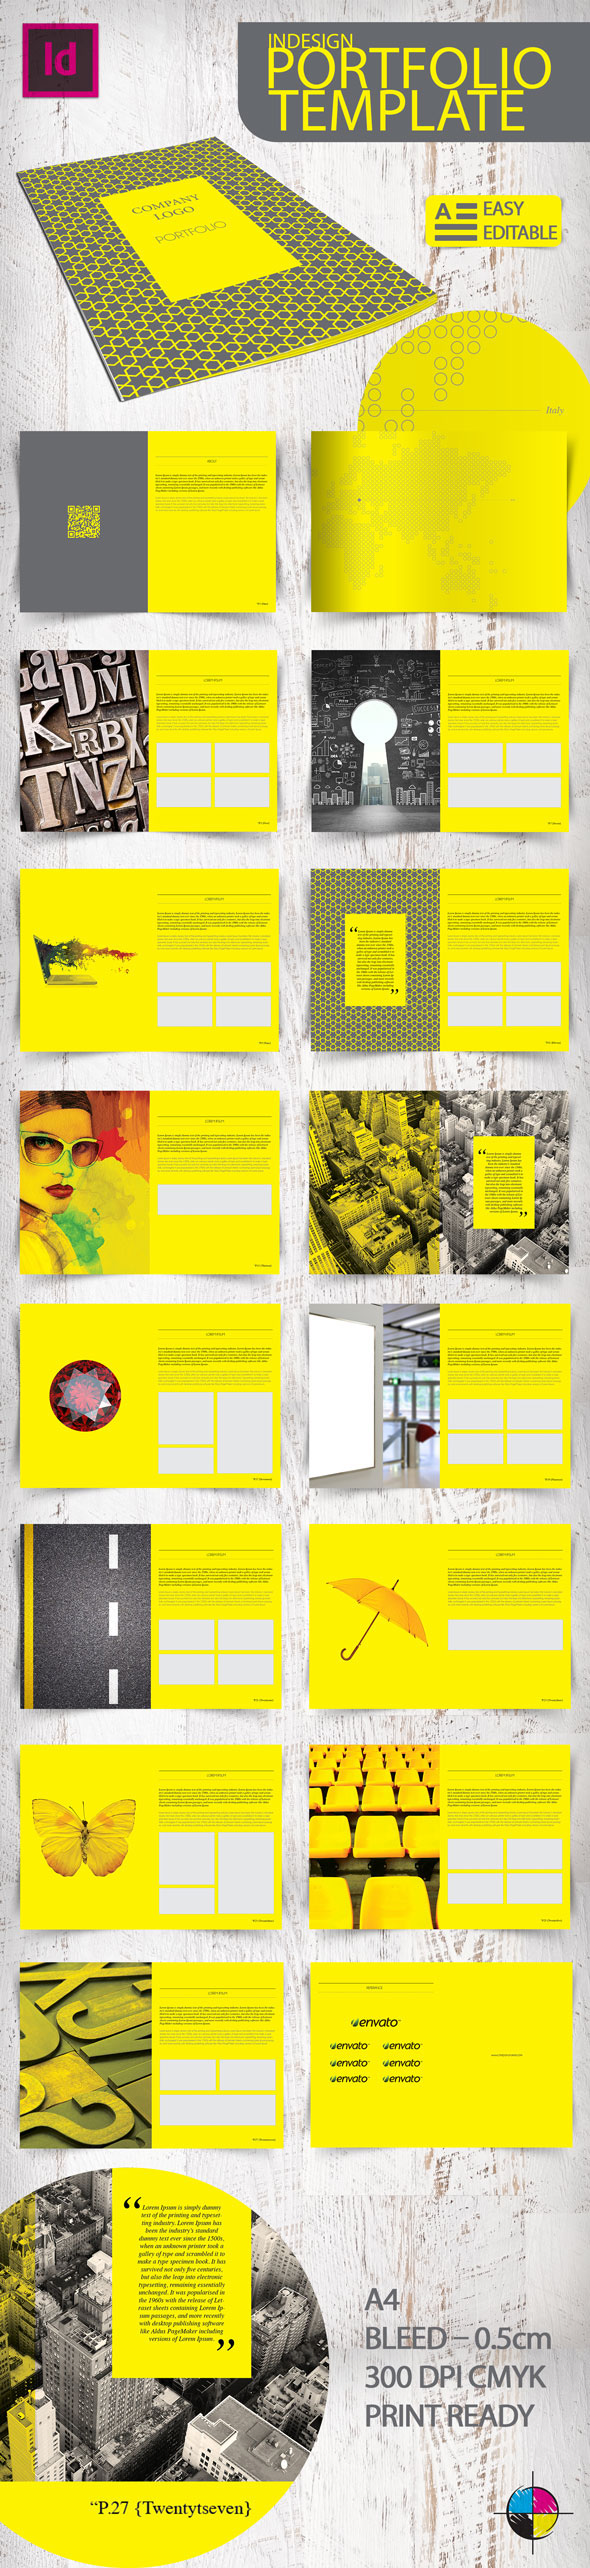 Indesign Portfolio Template On Behance